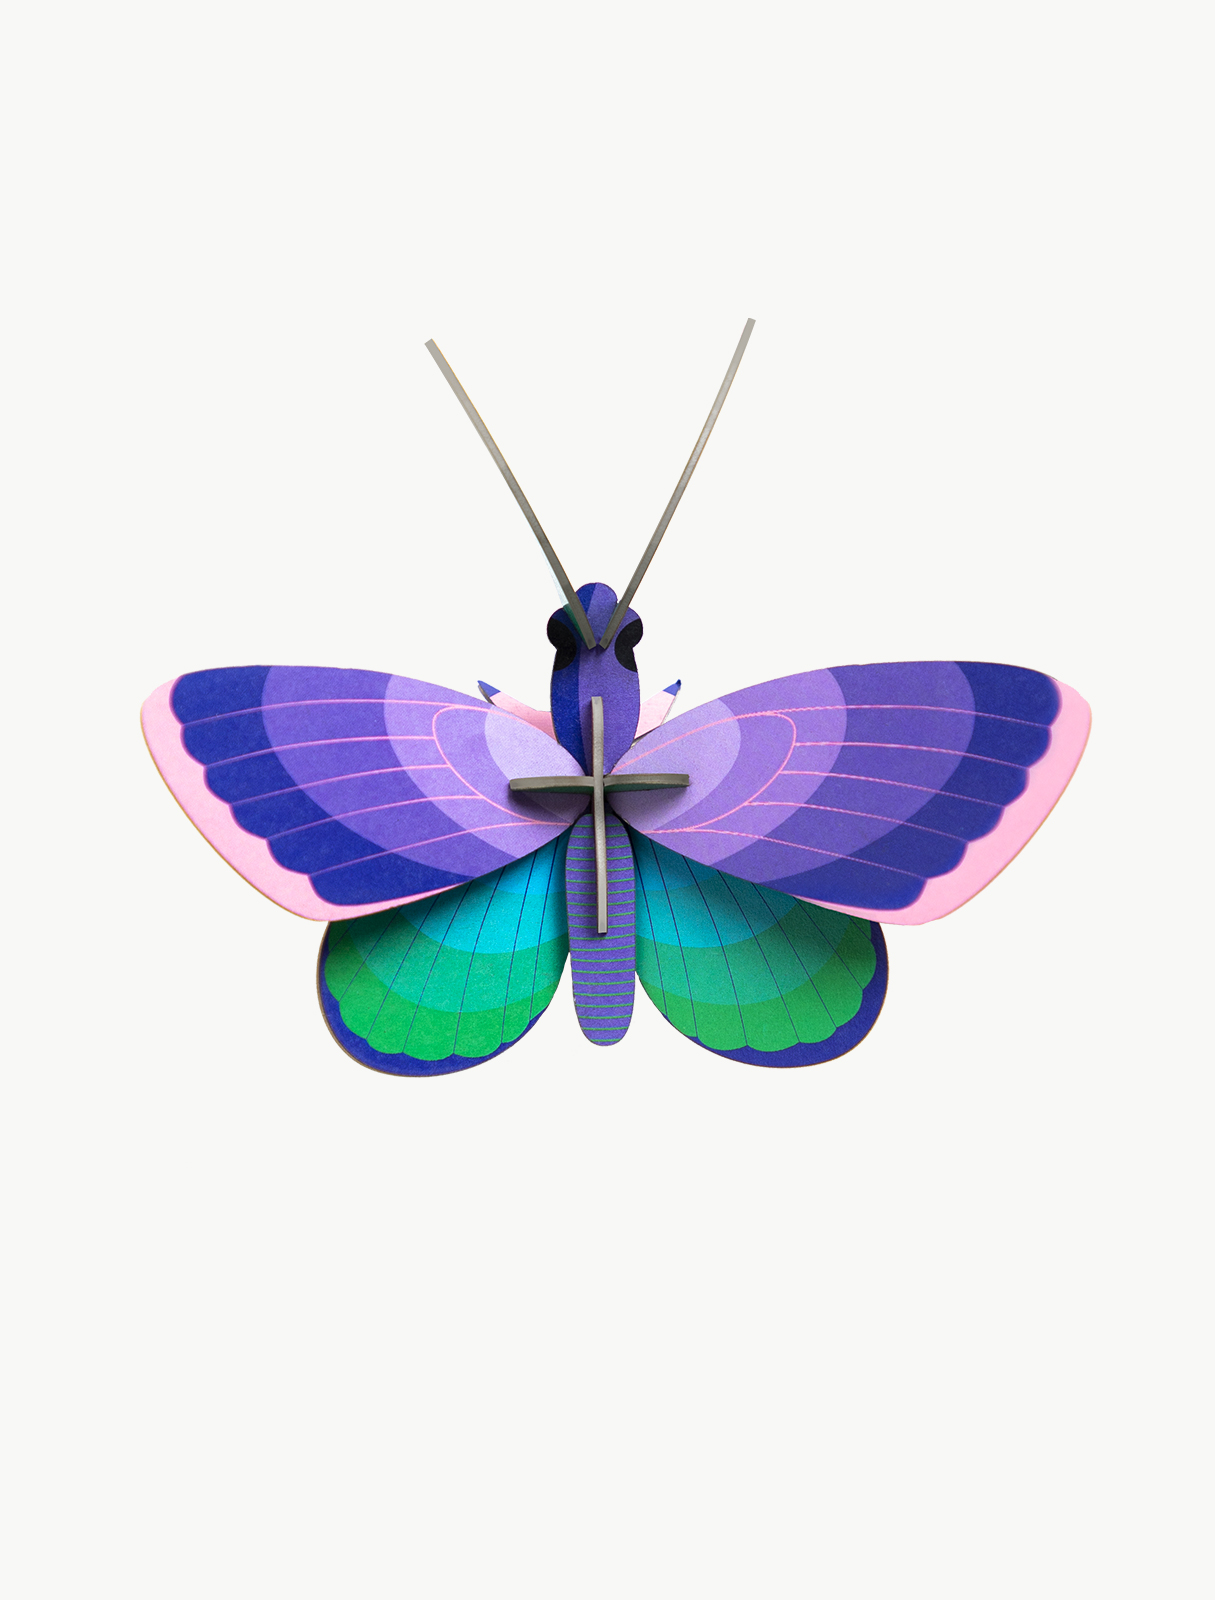 small-insects-blue-copper-butterfly-1